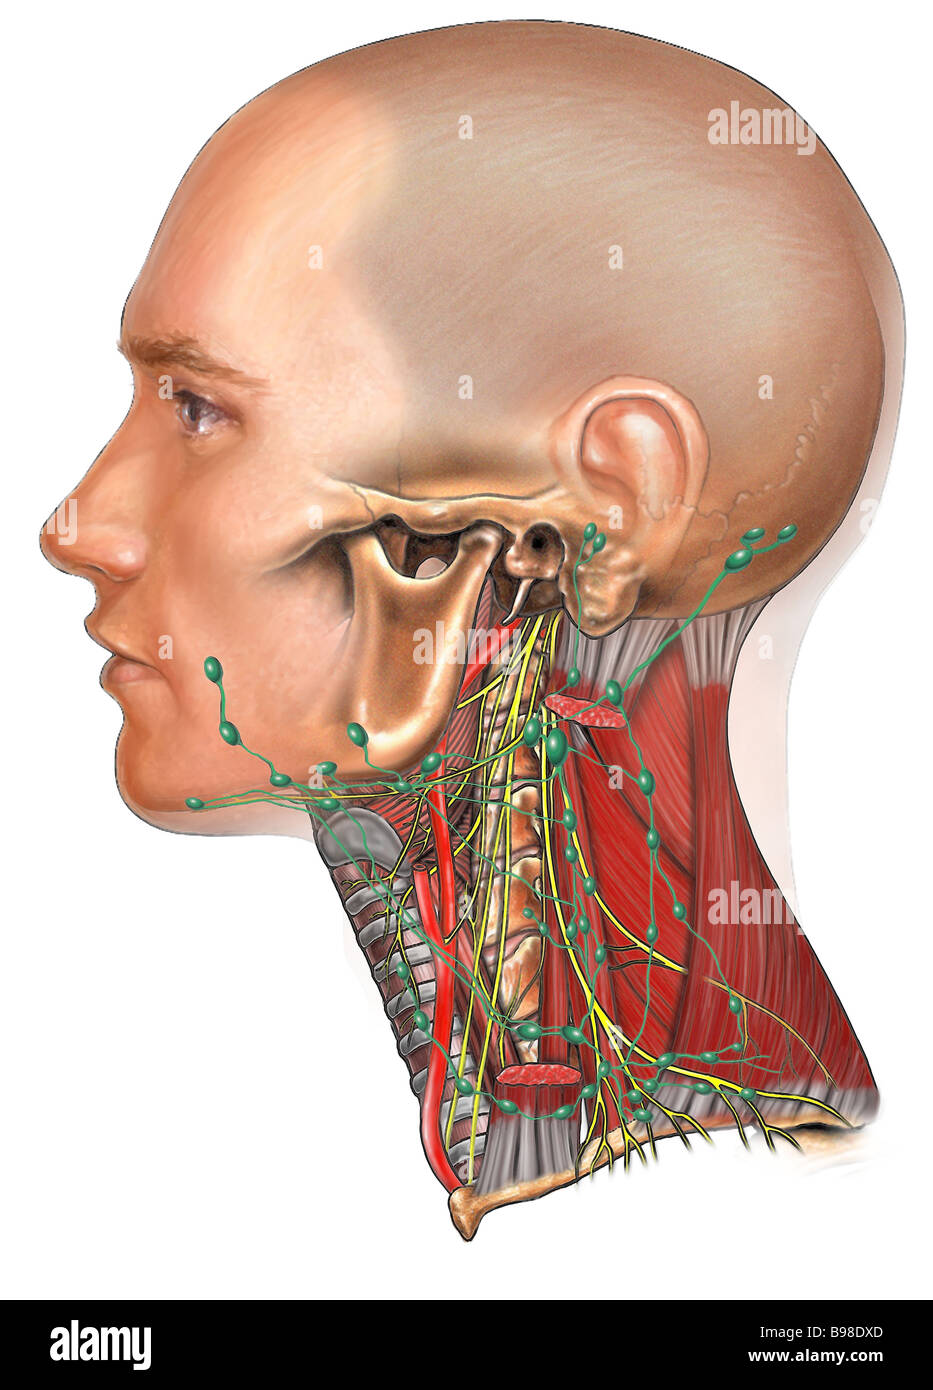 Lymph Nodes of the Head and Neck Stock Photo: 22928821 - Alamy